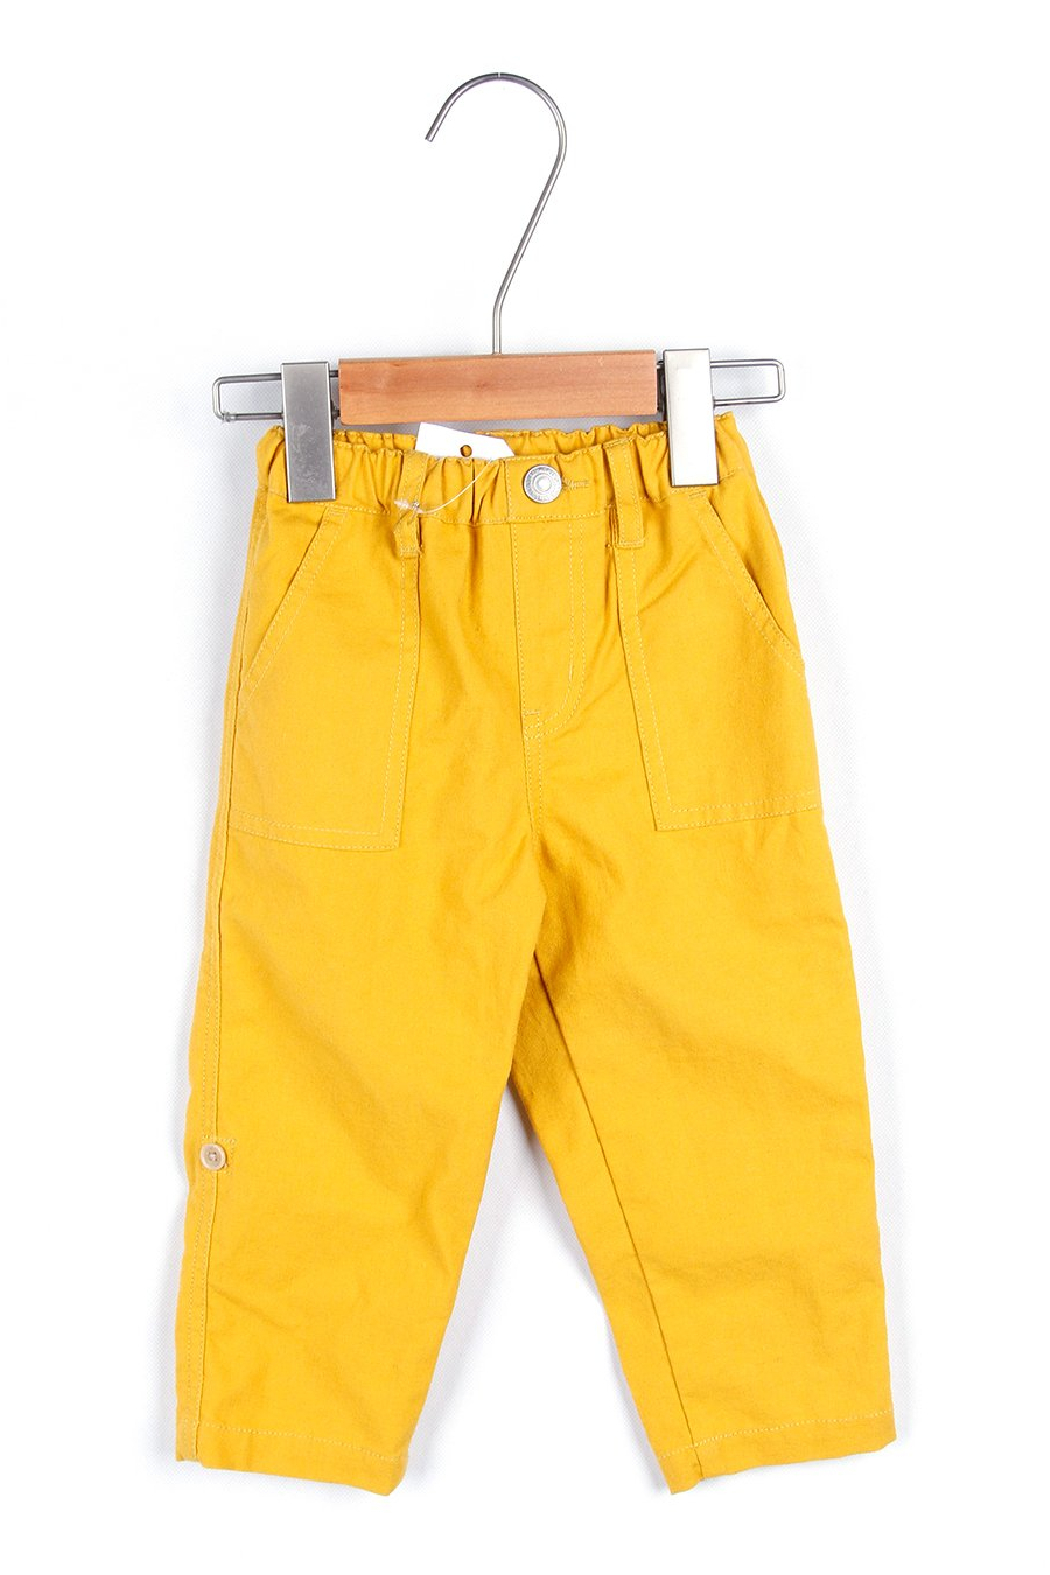 Bitz Kids  Yellow Linen Roll-up Pants - Front Cropped Image